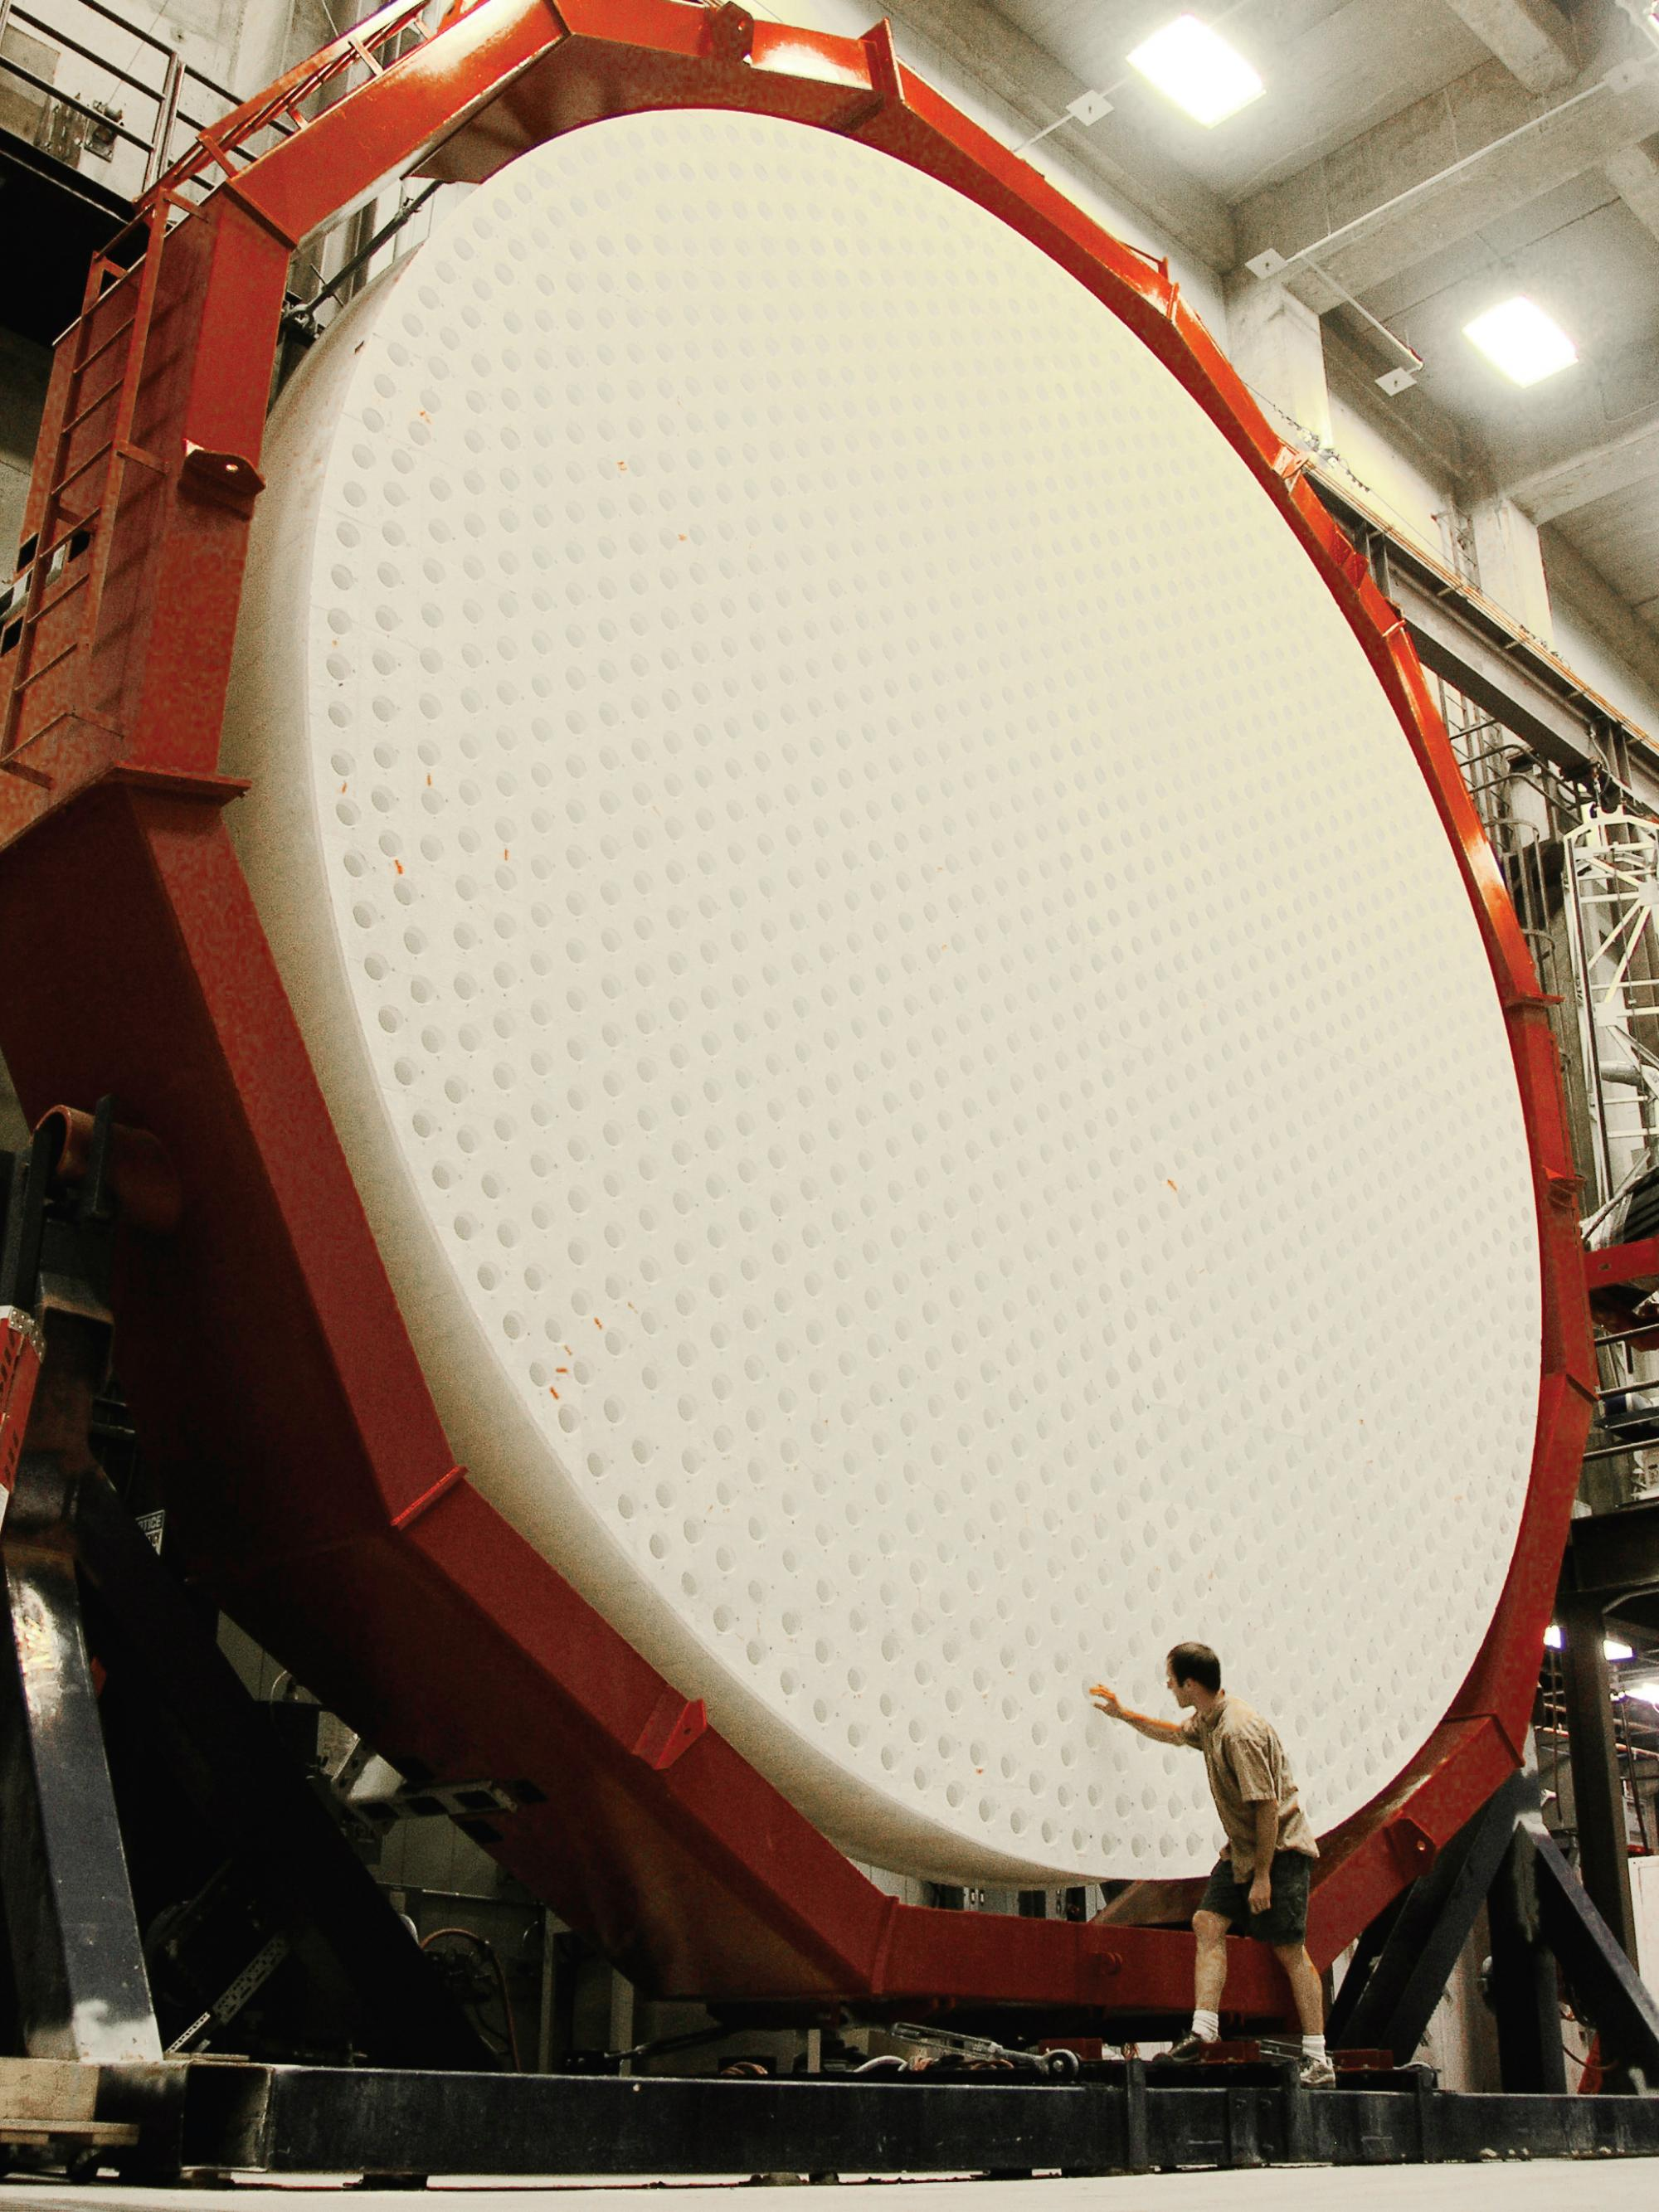 The first of seven mirrors for the Giant Magellan Telescope after removal from the furnace. The back surface of the mirror is shown here during an inspection of the holes used to ventilate the mirror during operation in the telescope.